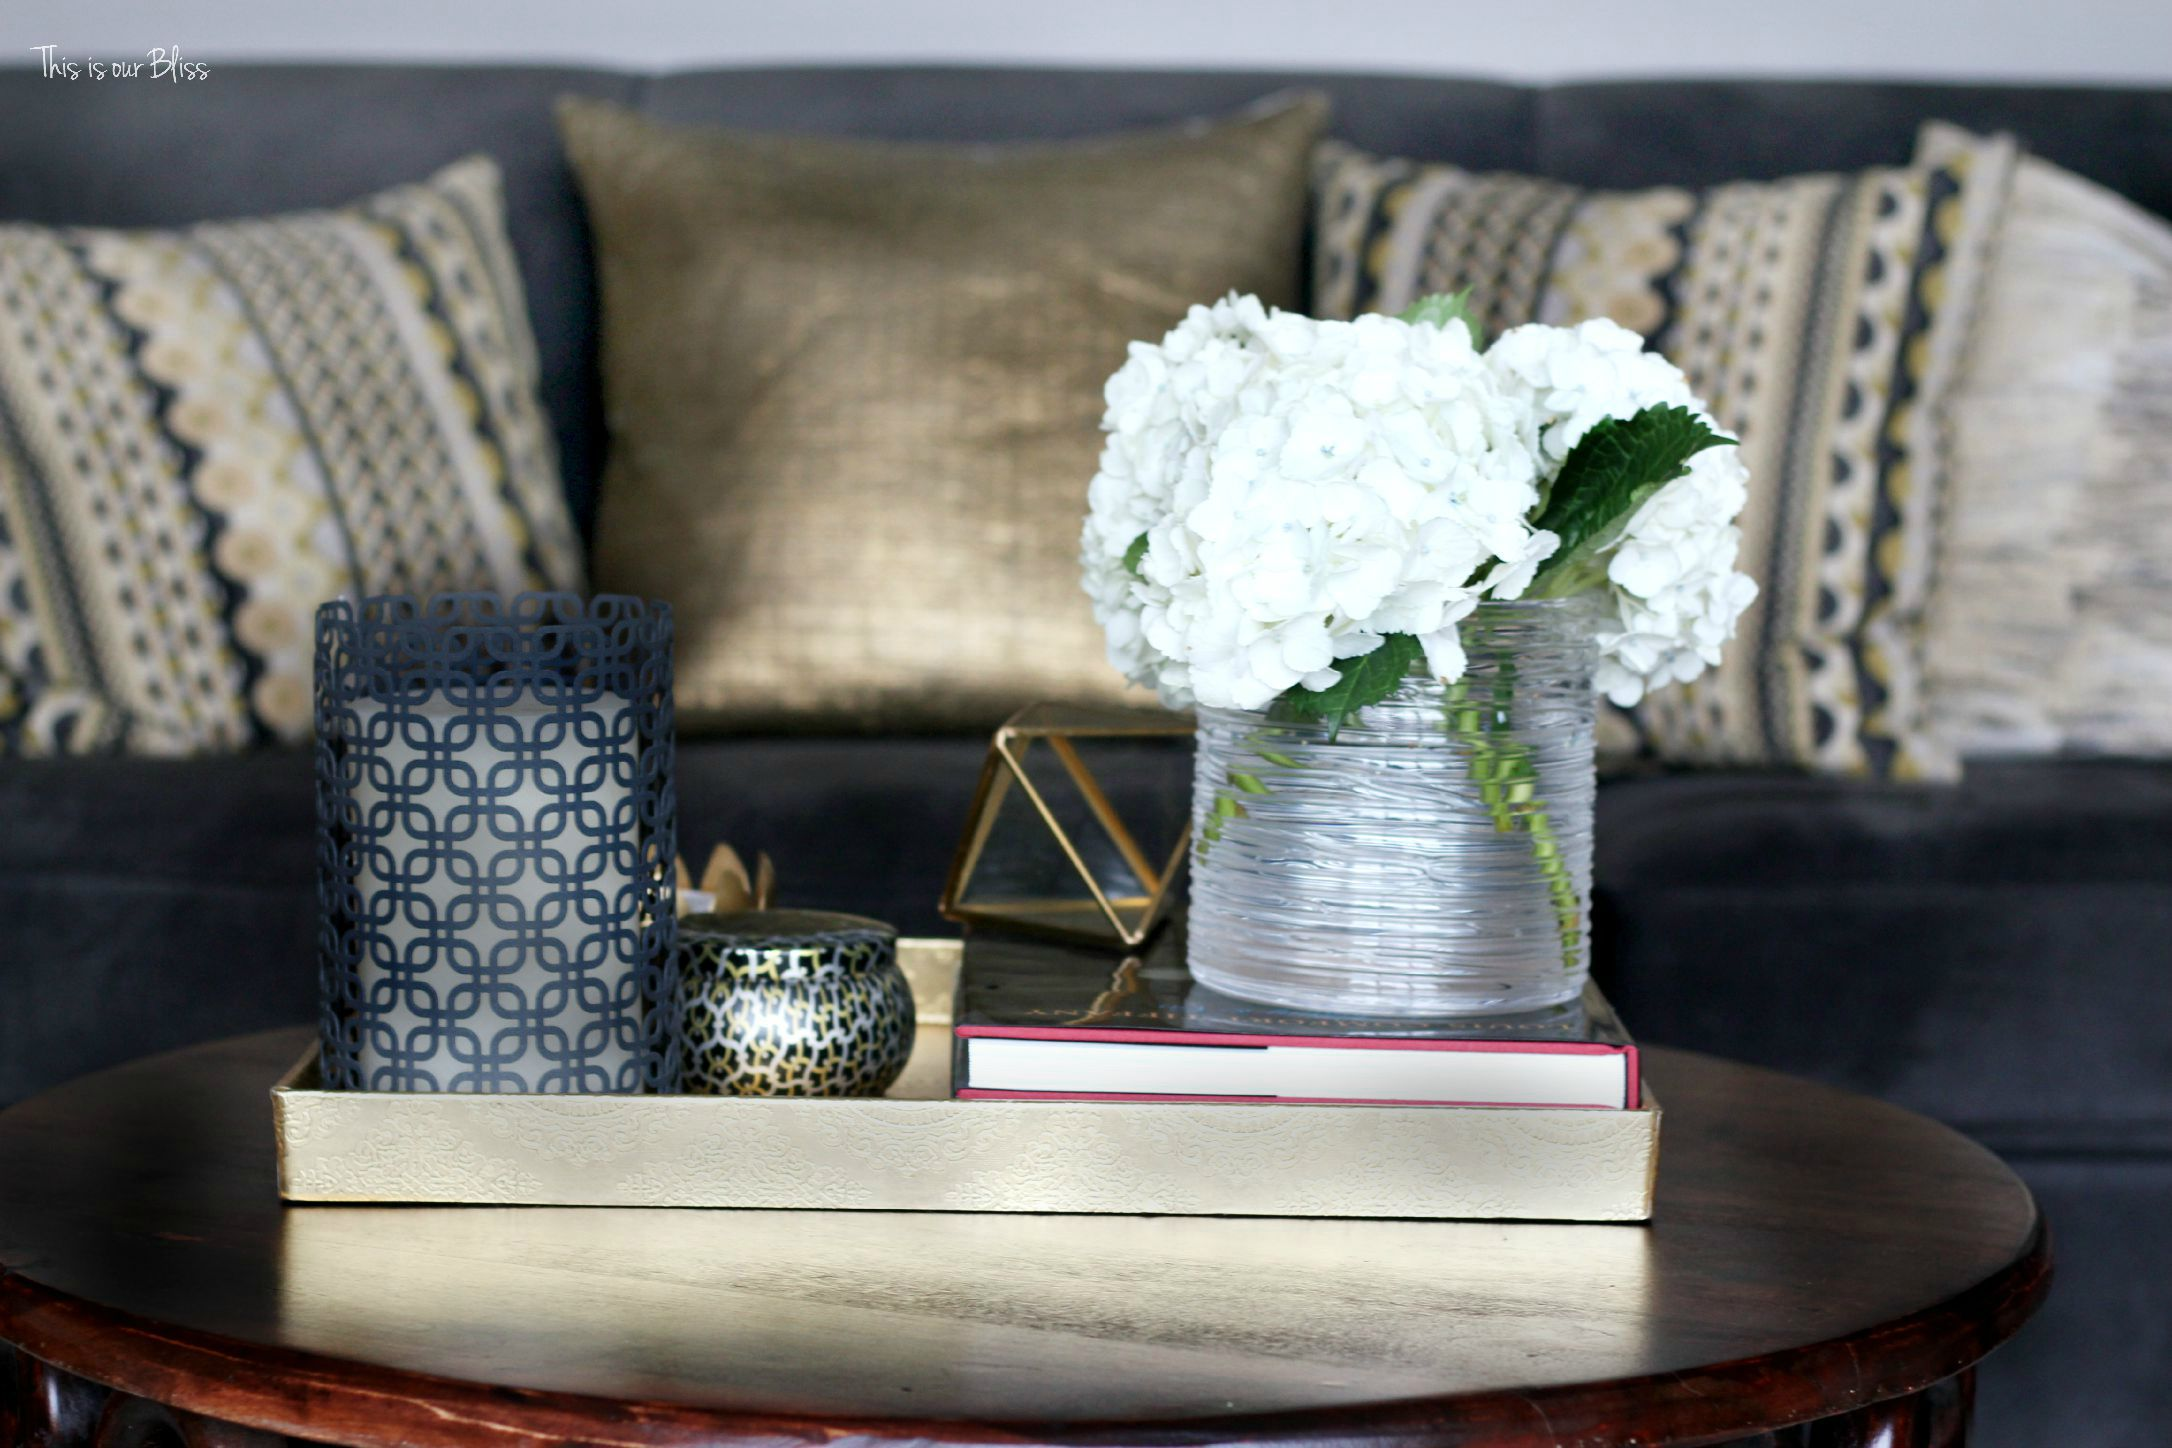 how to style a coffee table - coffee table styling - formal living room couch - gallery wall - elements of a well-styled coffee table 1 - gold detail - back to basics - This is our bliss